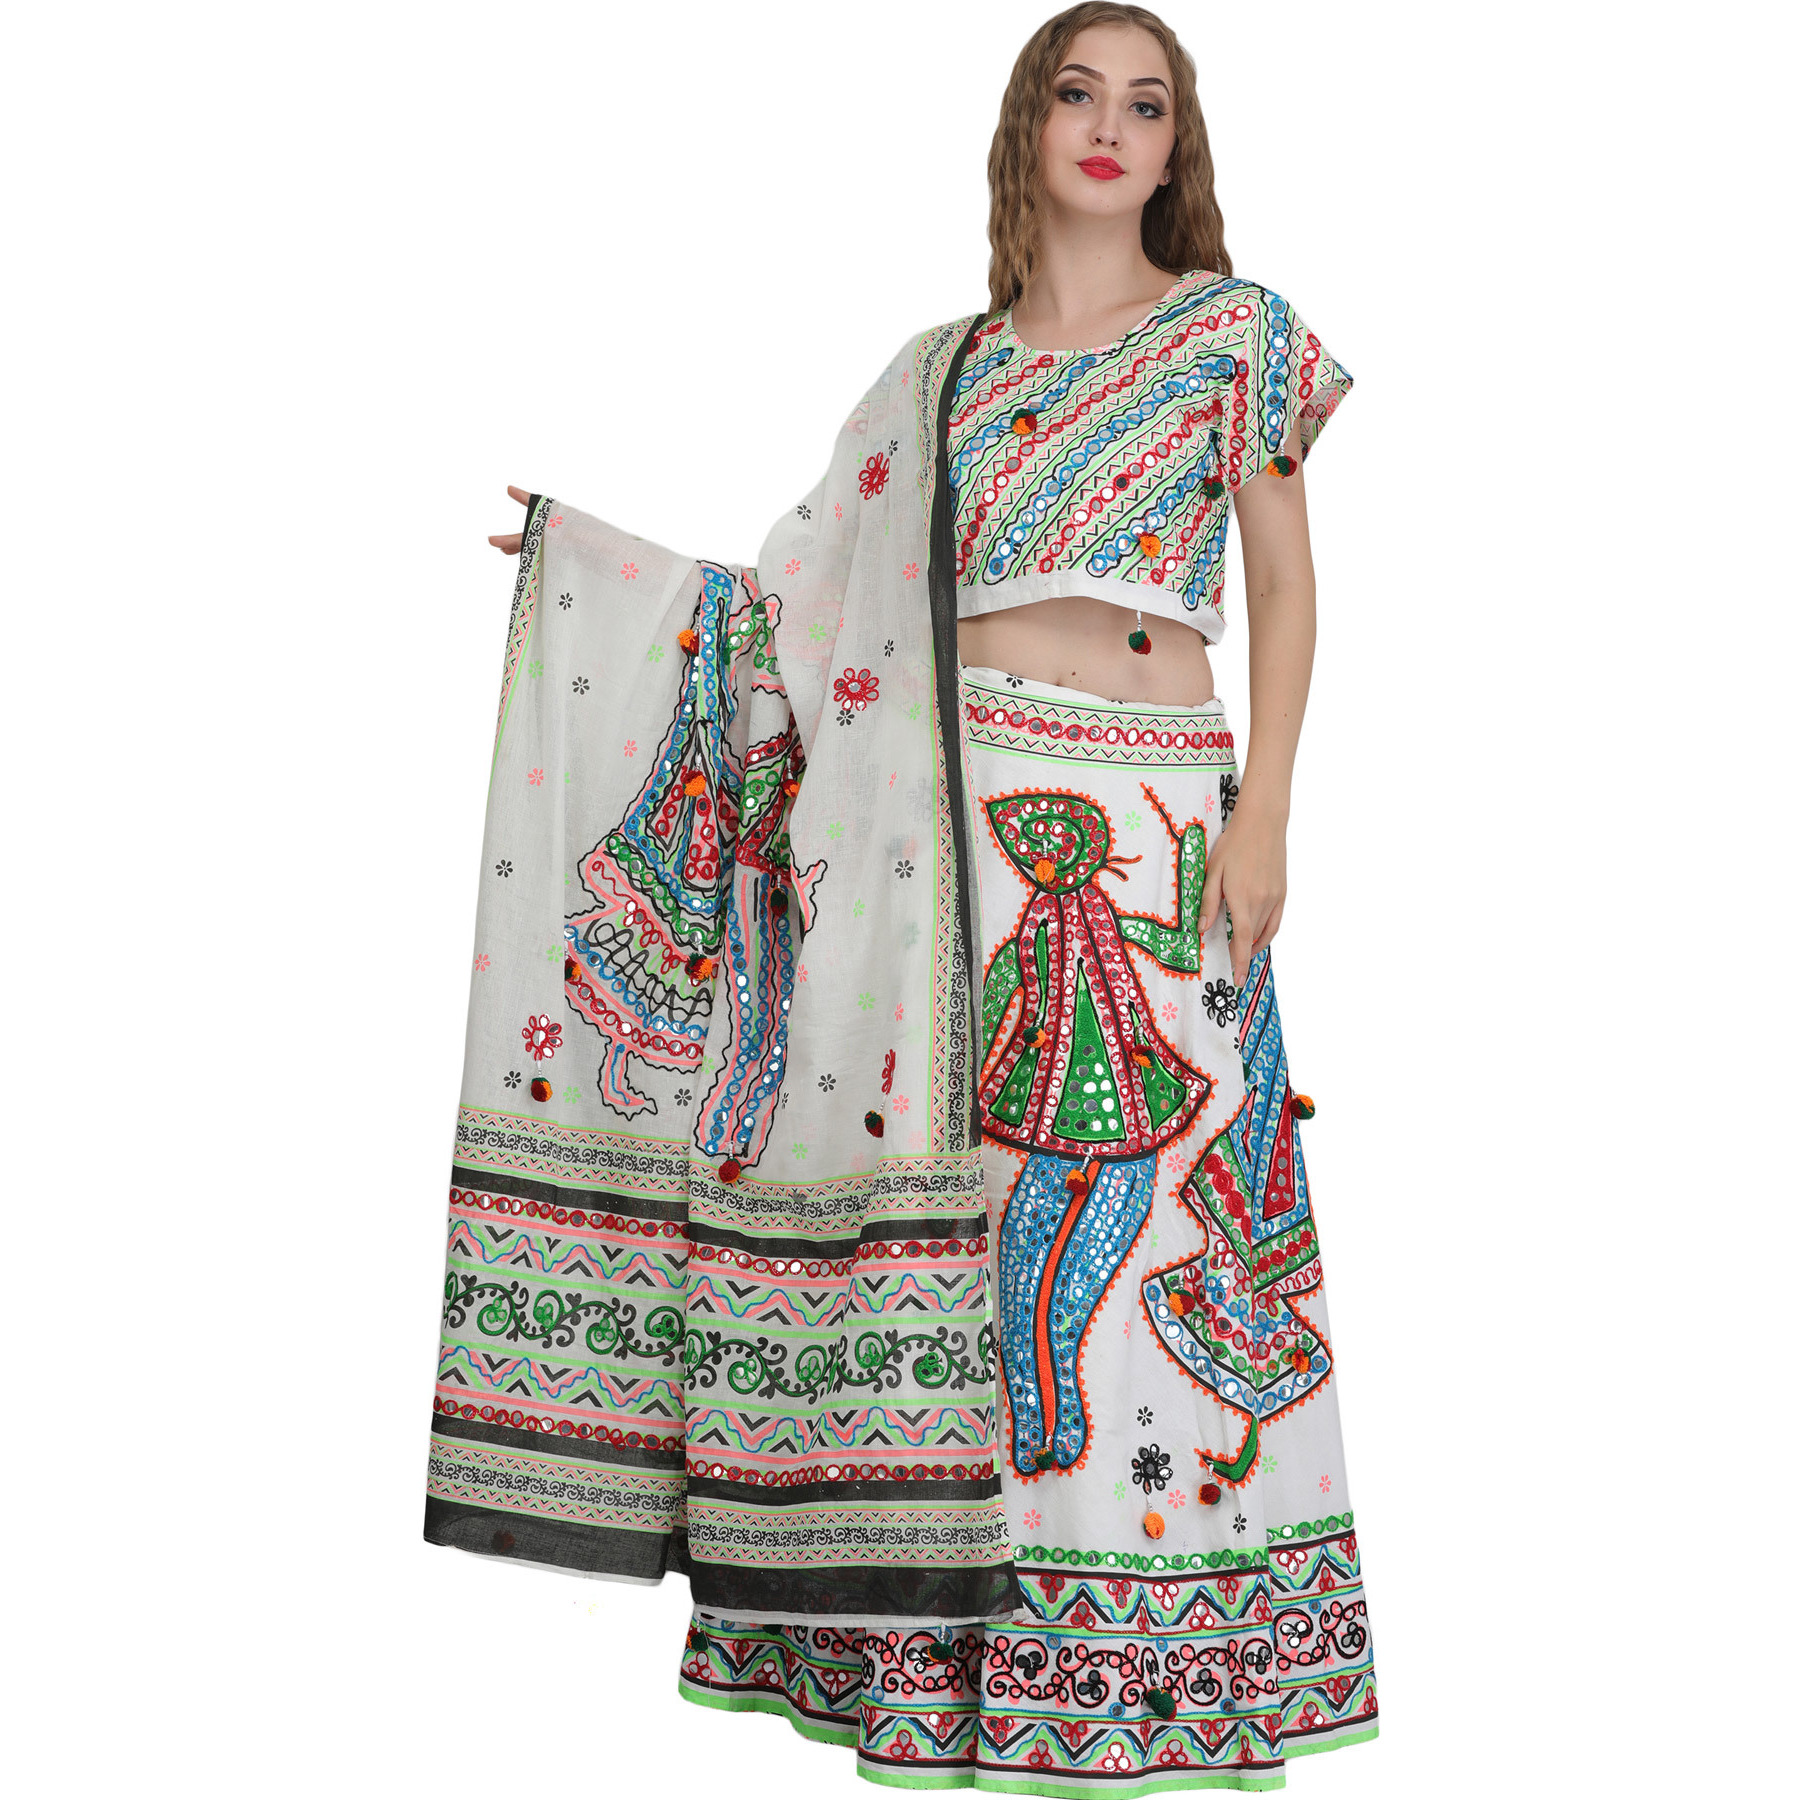 White Embroidered Lehenga Choli from Jodhpur with Large Sequins and Depicting Dandia Dance